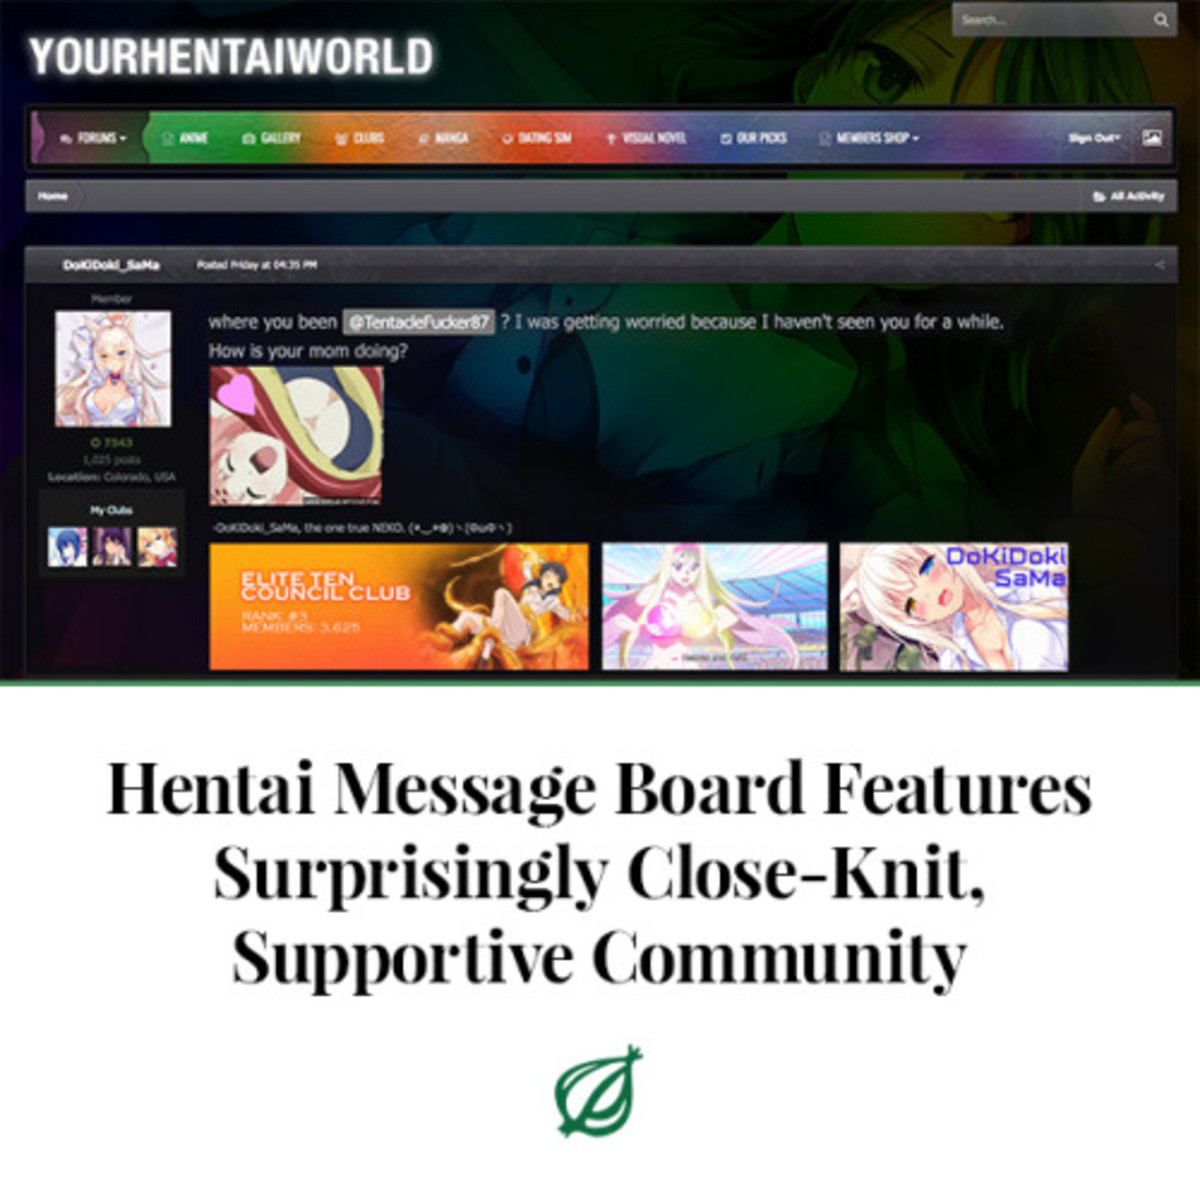 """bond. . Hentai Message Board """"! tli Supportive .theonion: ' CANTON, sting the deep and genuine mutual fondness that fans of pornographic Japanese imagery have d"""